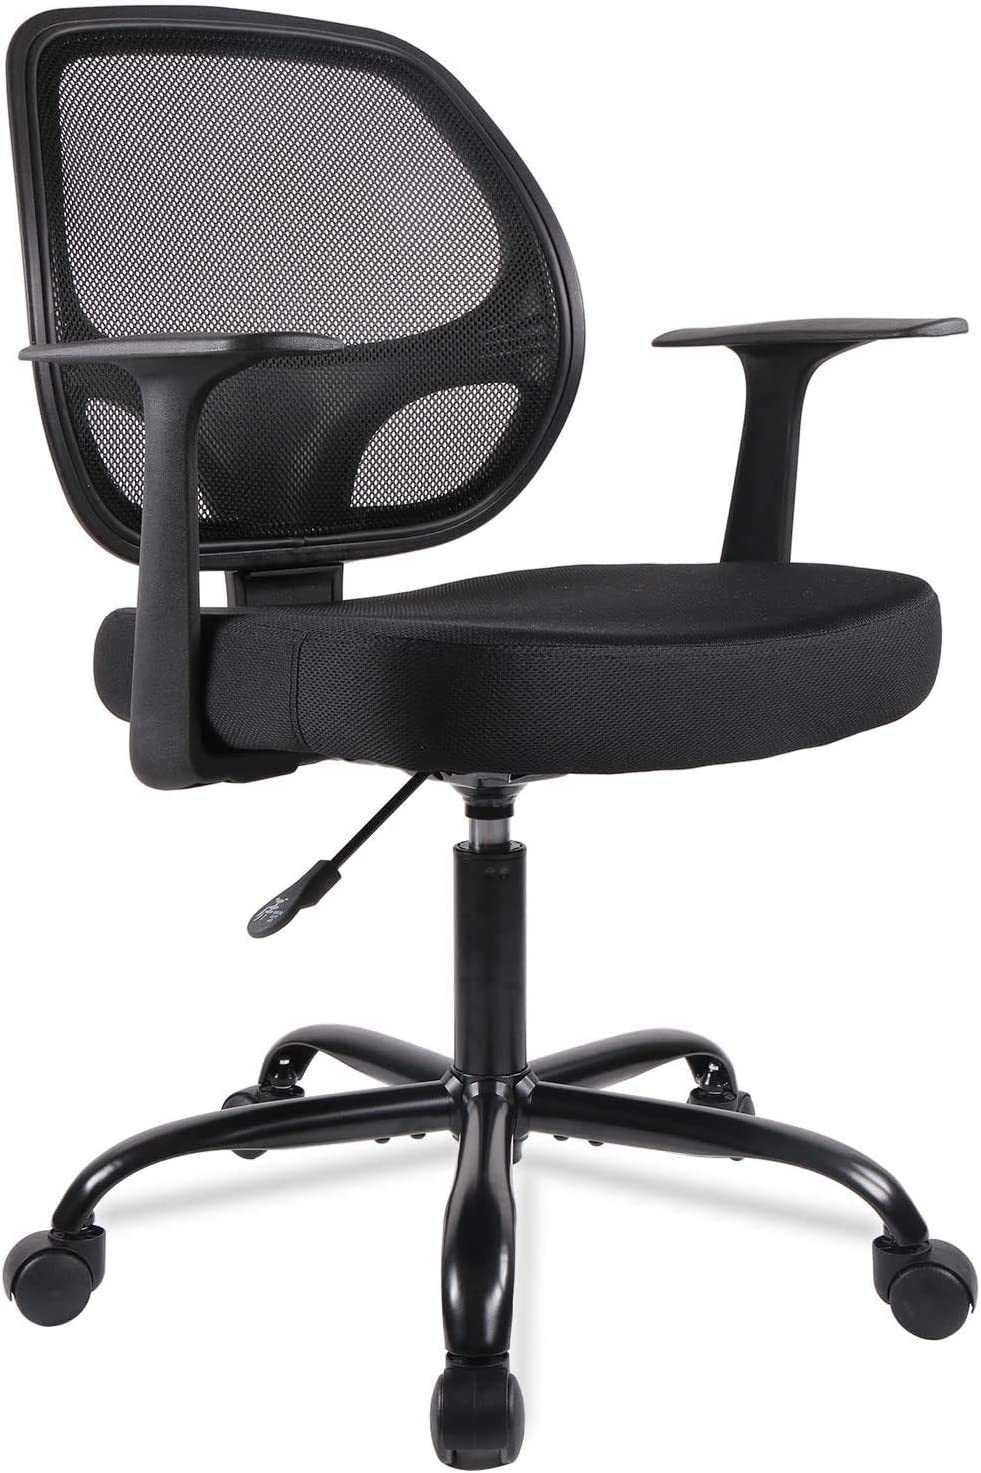 Home Office Chair Desk Chair Mid-Back Mesh Computer Chair with Lumbar  Support Swivel Rolling Chair